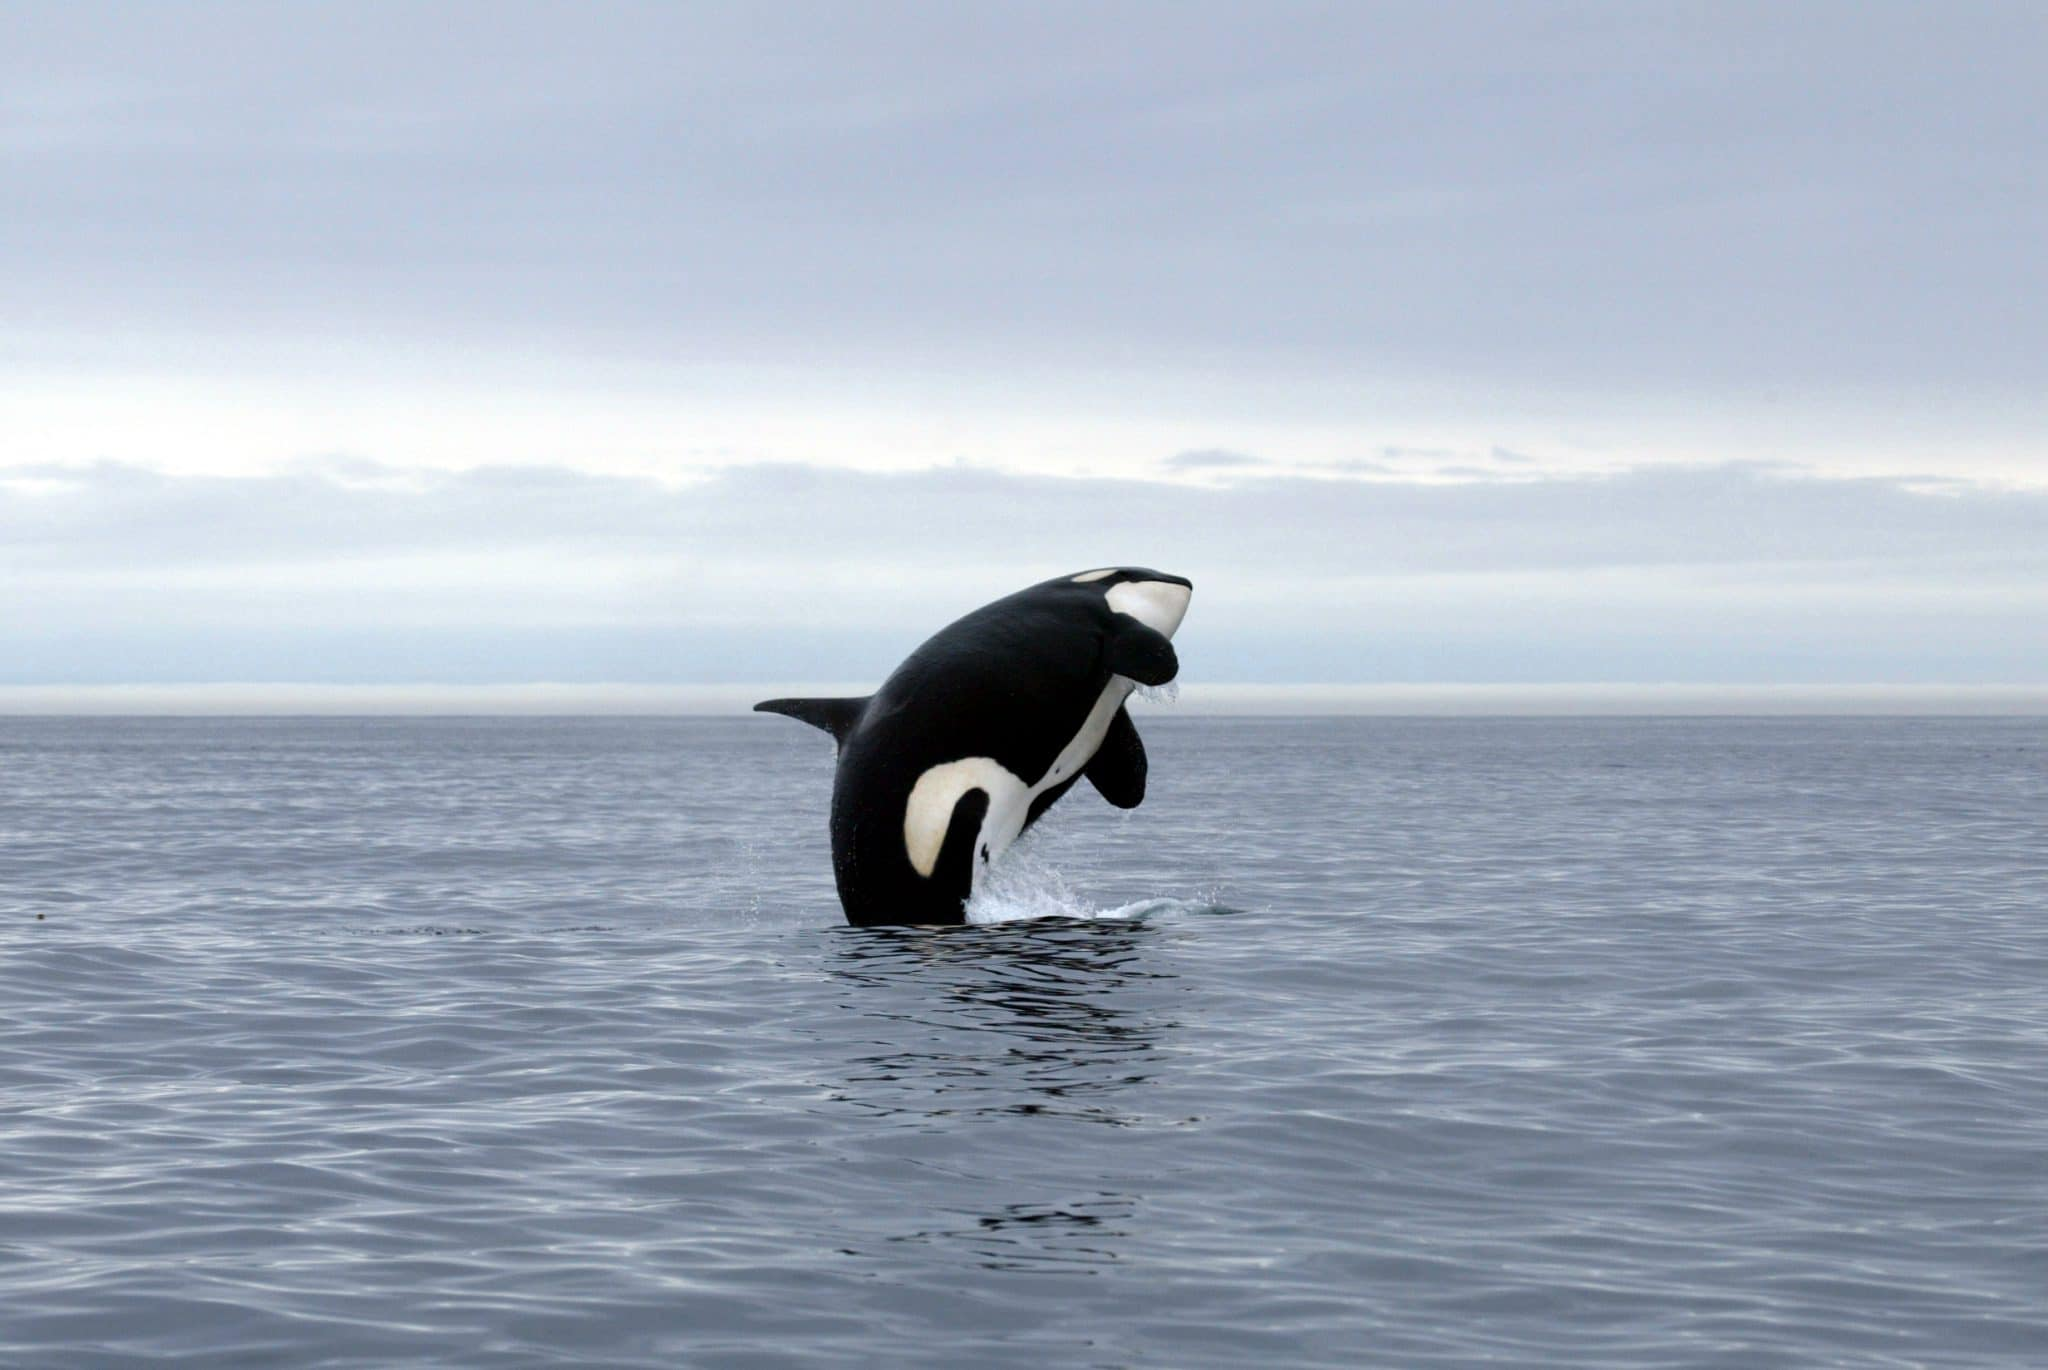 Orca Whale jumping on British Columbia coast – Vancouver Island (iStock 2020)